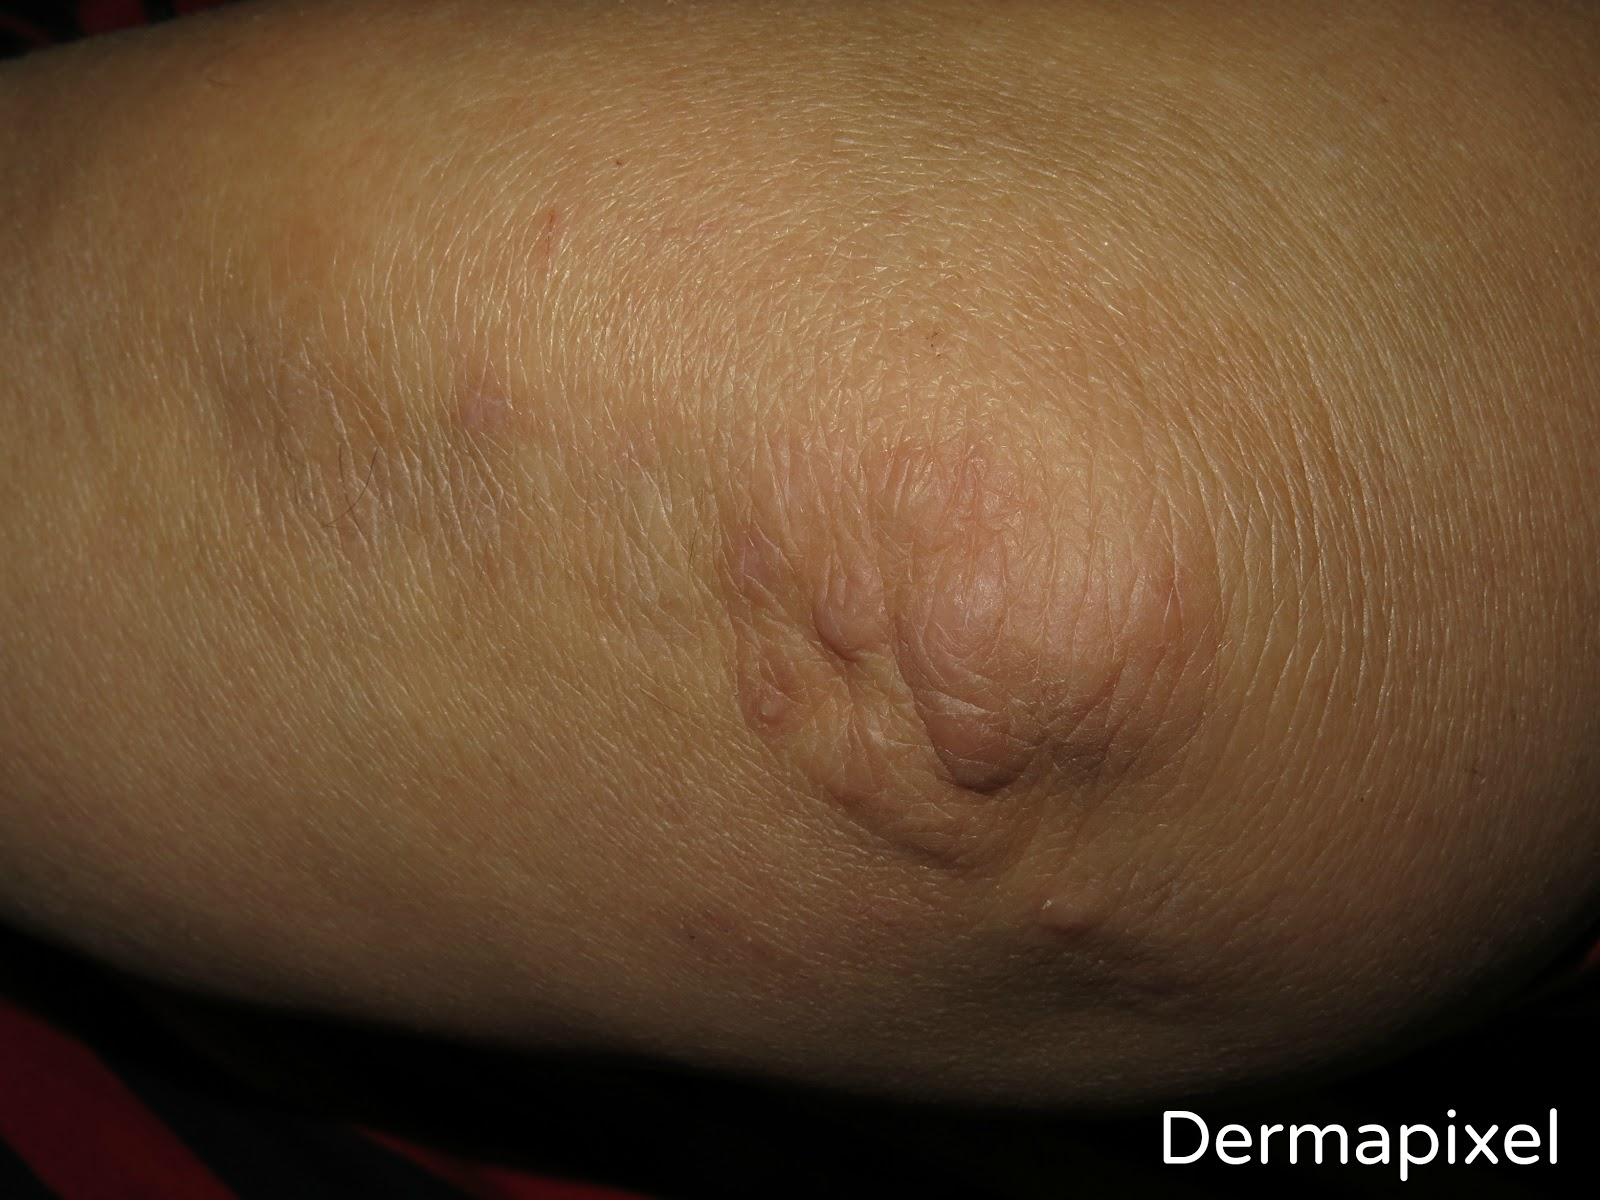 granuloma anular intersticial y diabetes